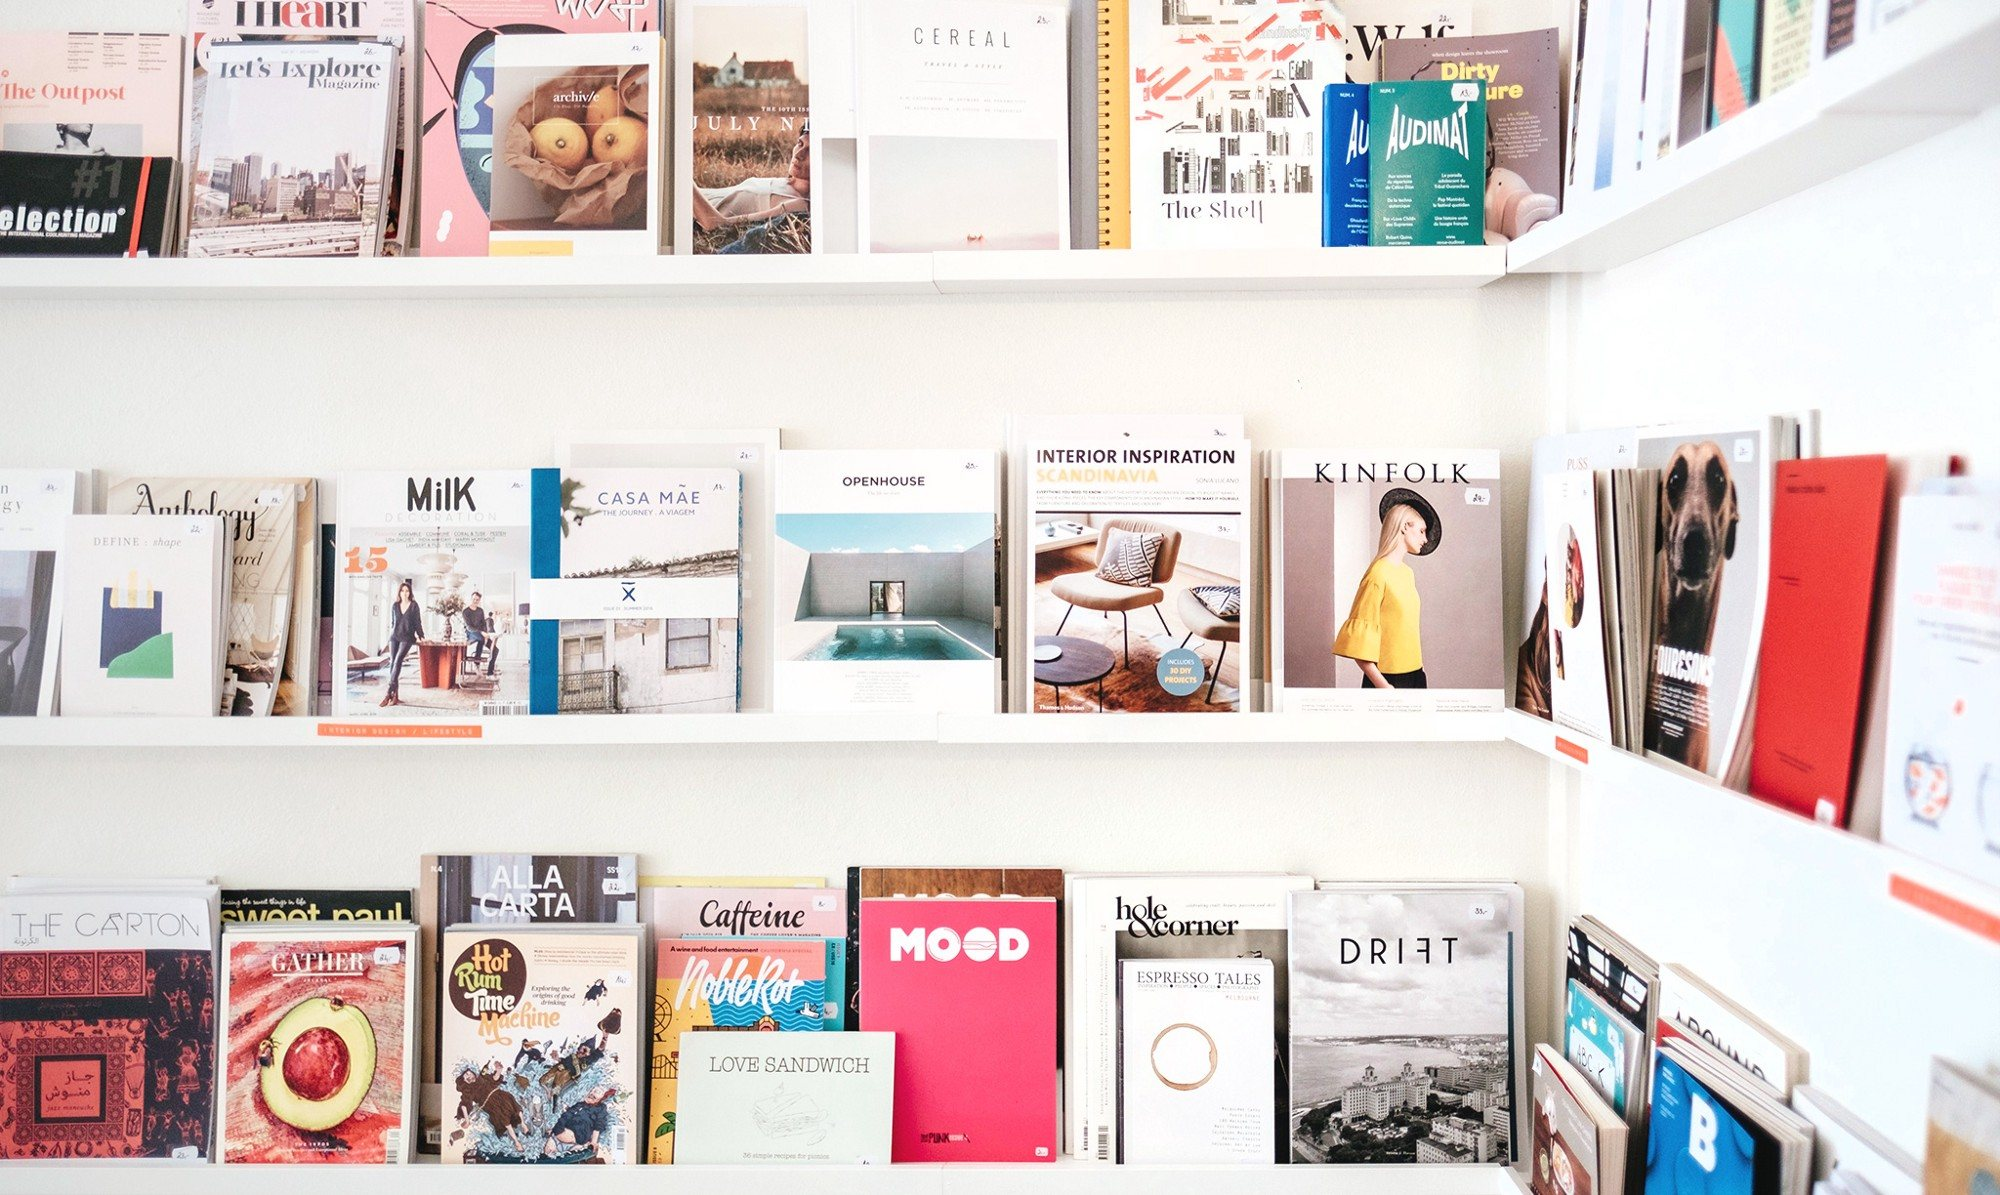 15 photography magazines that you should definitely follow on Instagram